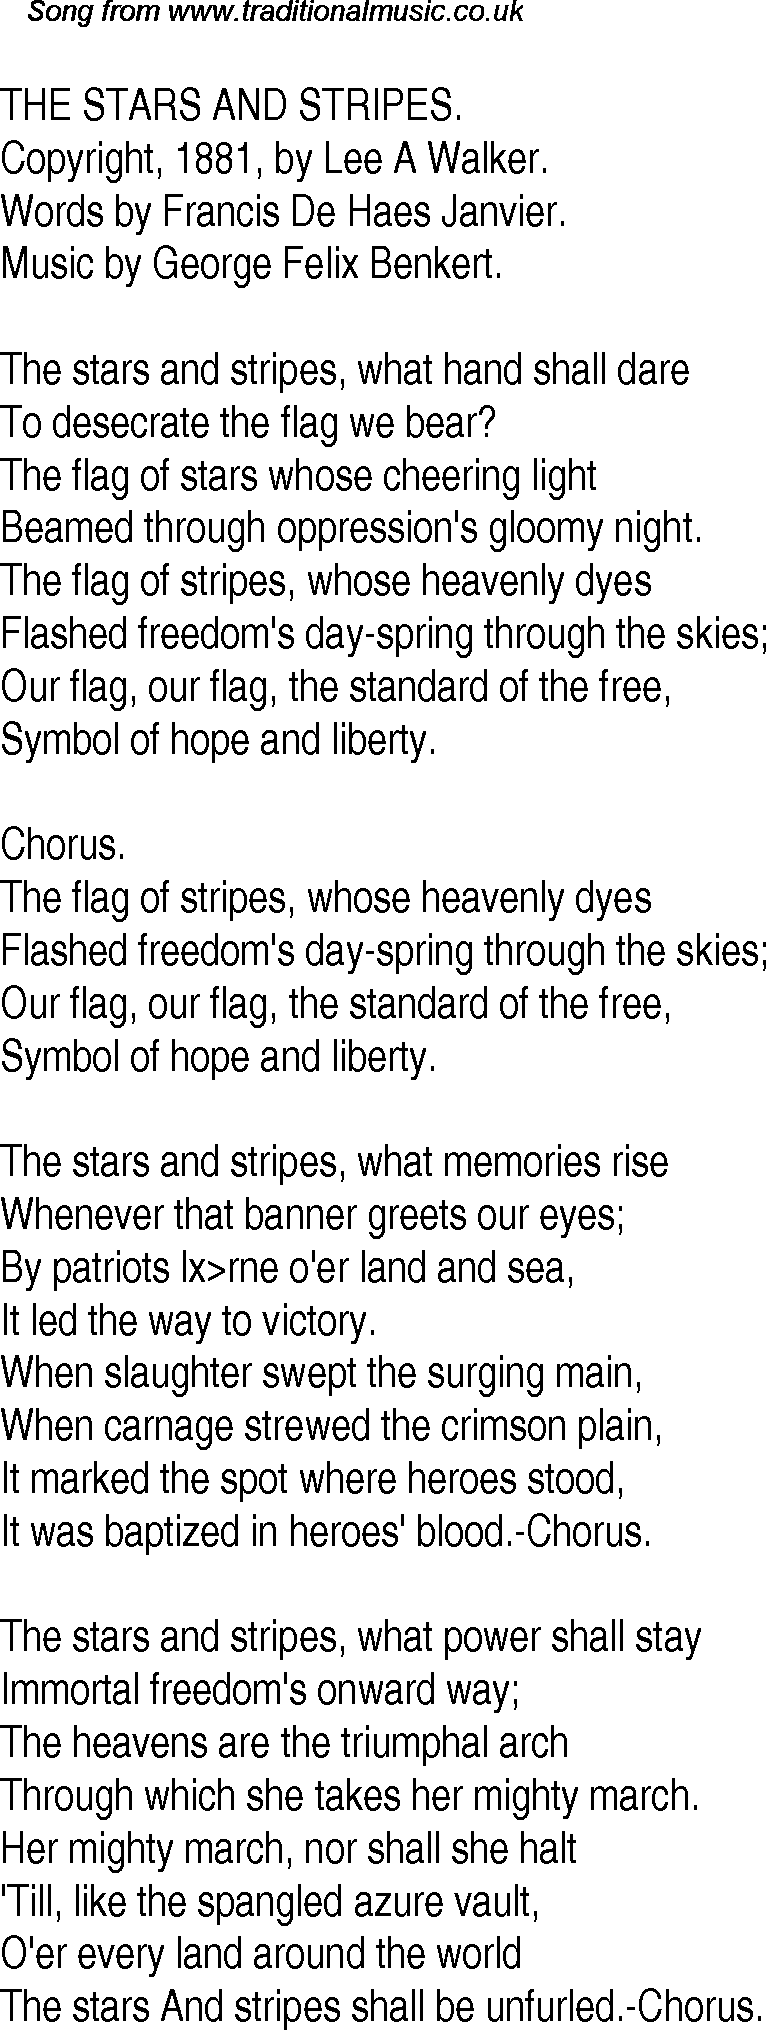 Old time song lyrics for 25 the stars and stripes inclusion in dtp etc biocorpaavc Choice Image